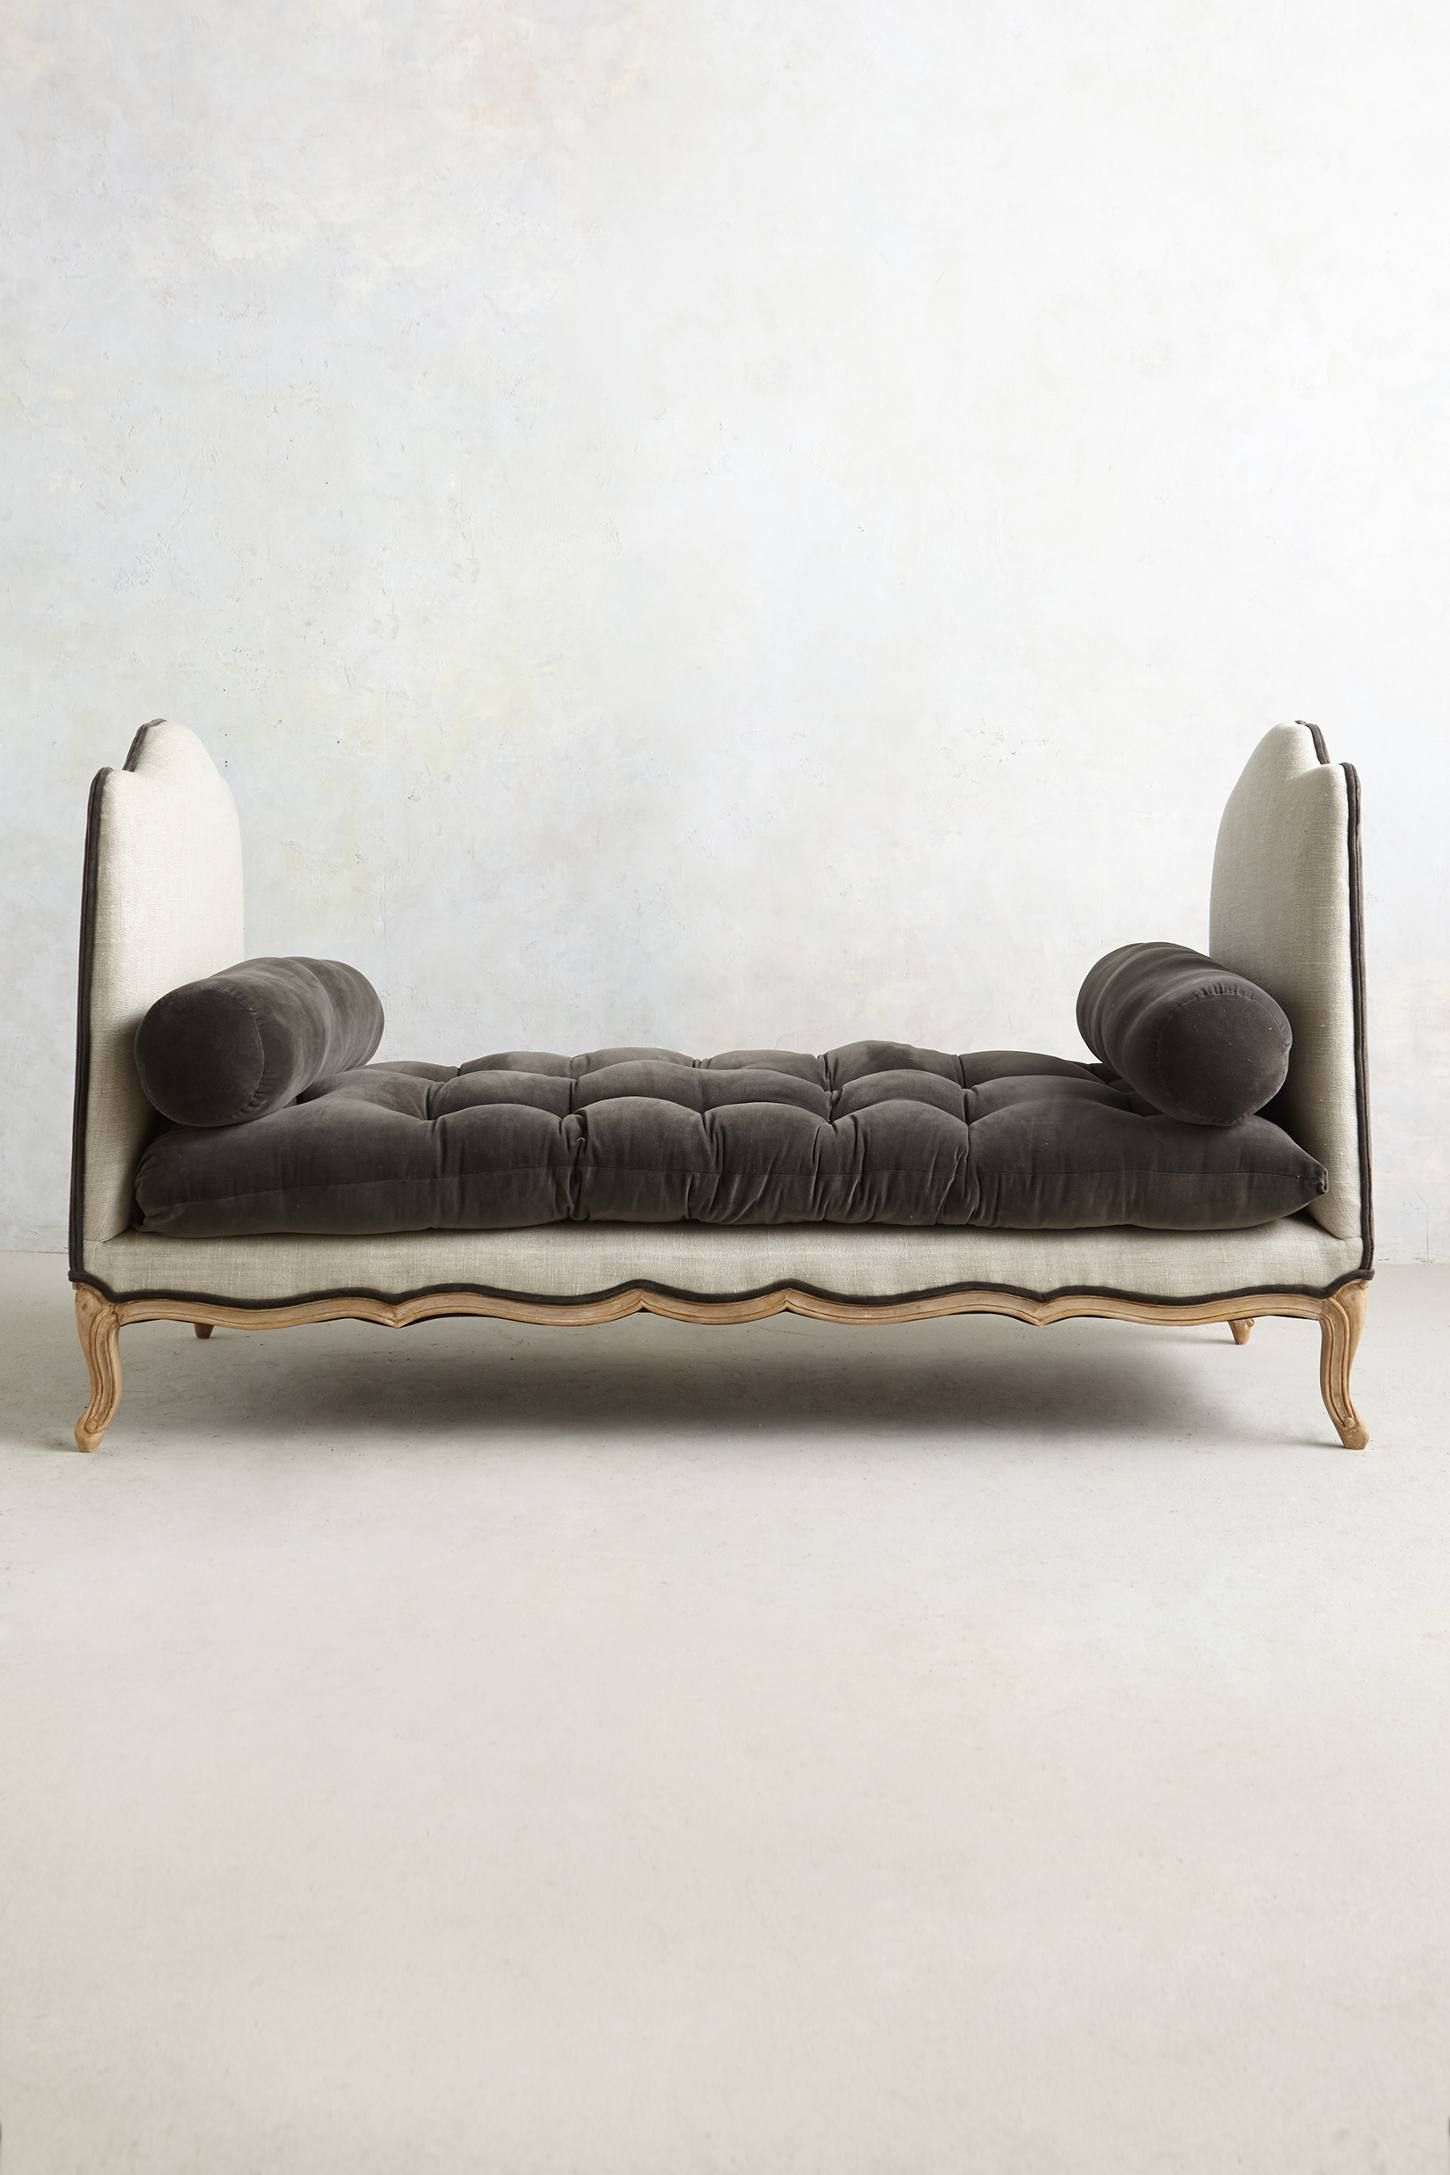 Vilas Velvet Daybed | Daybed, Interior inspiration and Apartment therapy